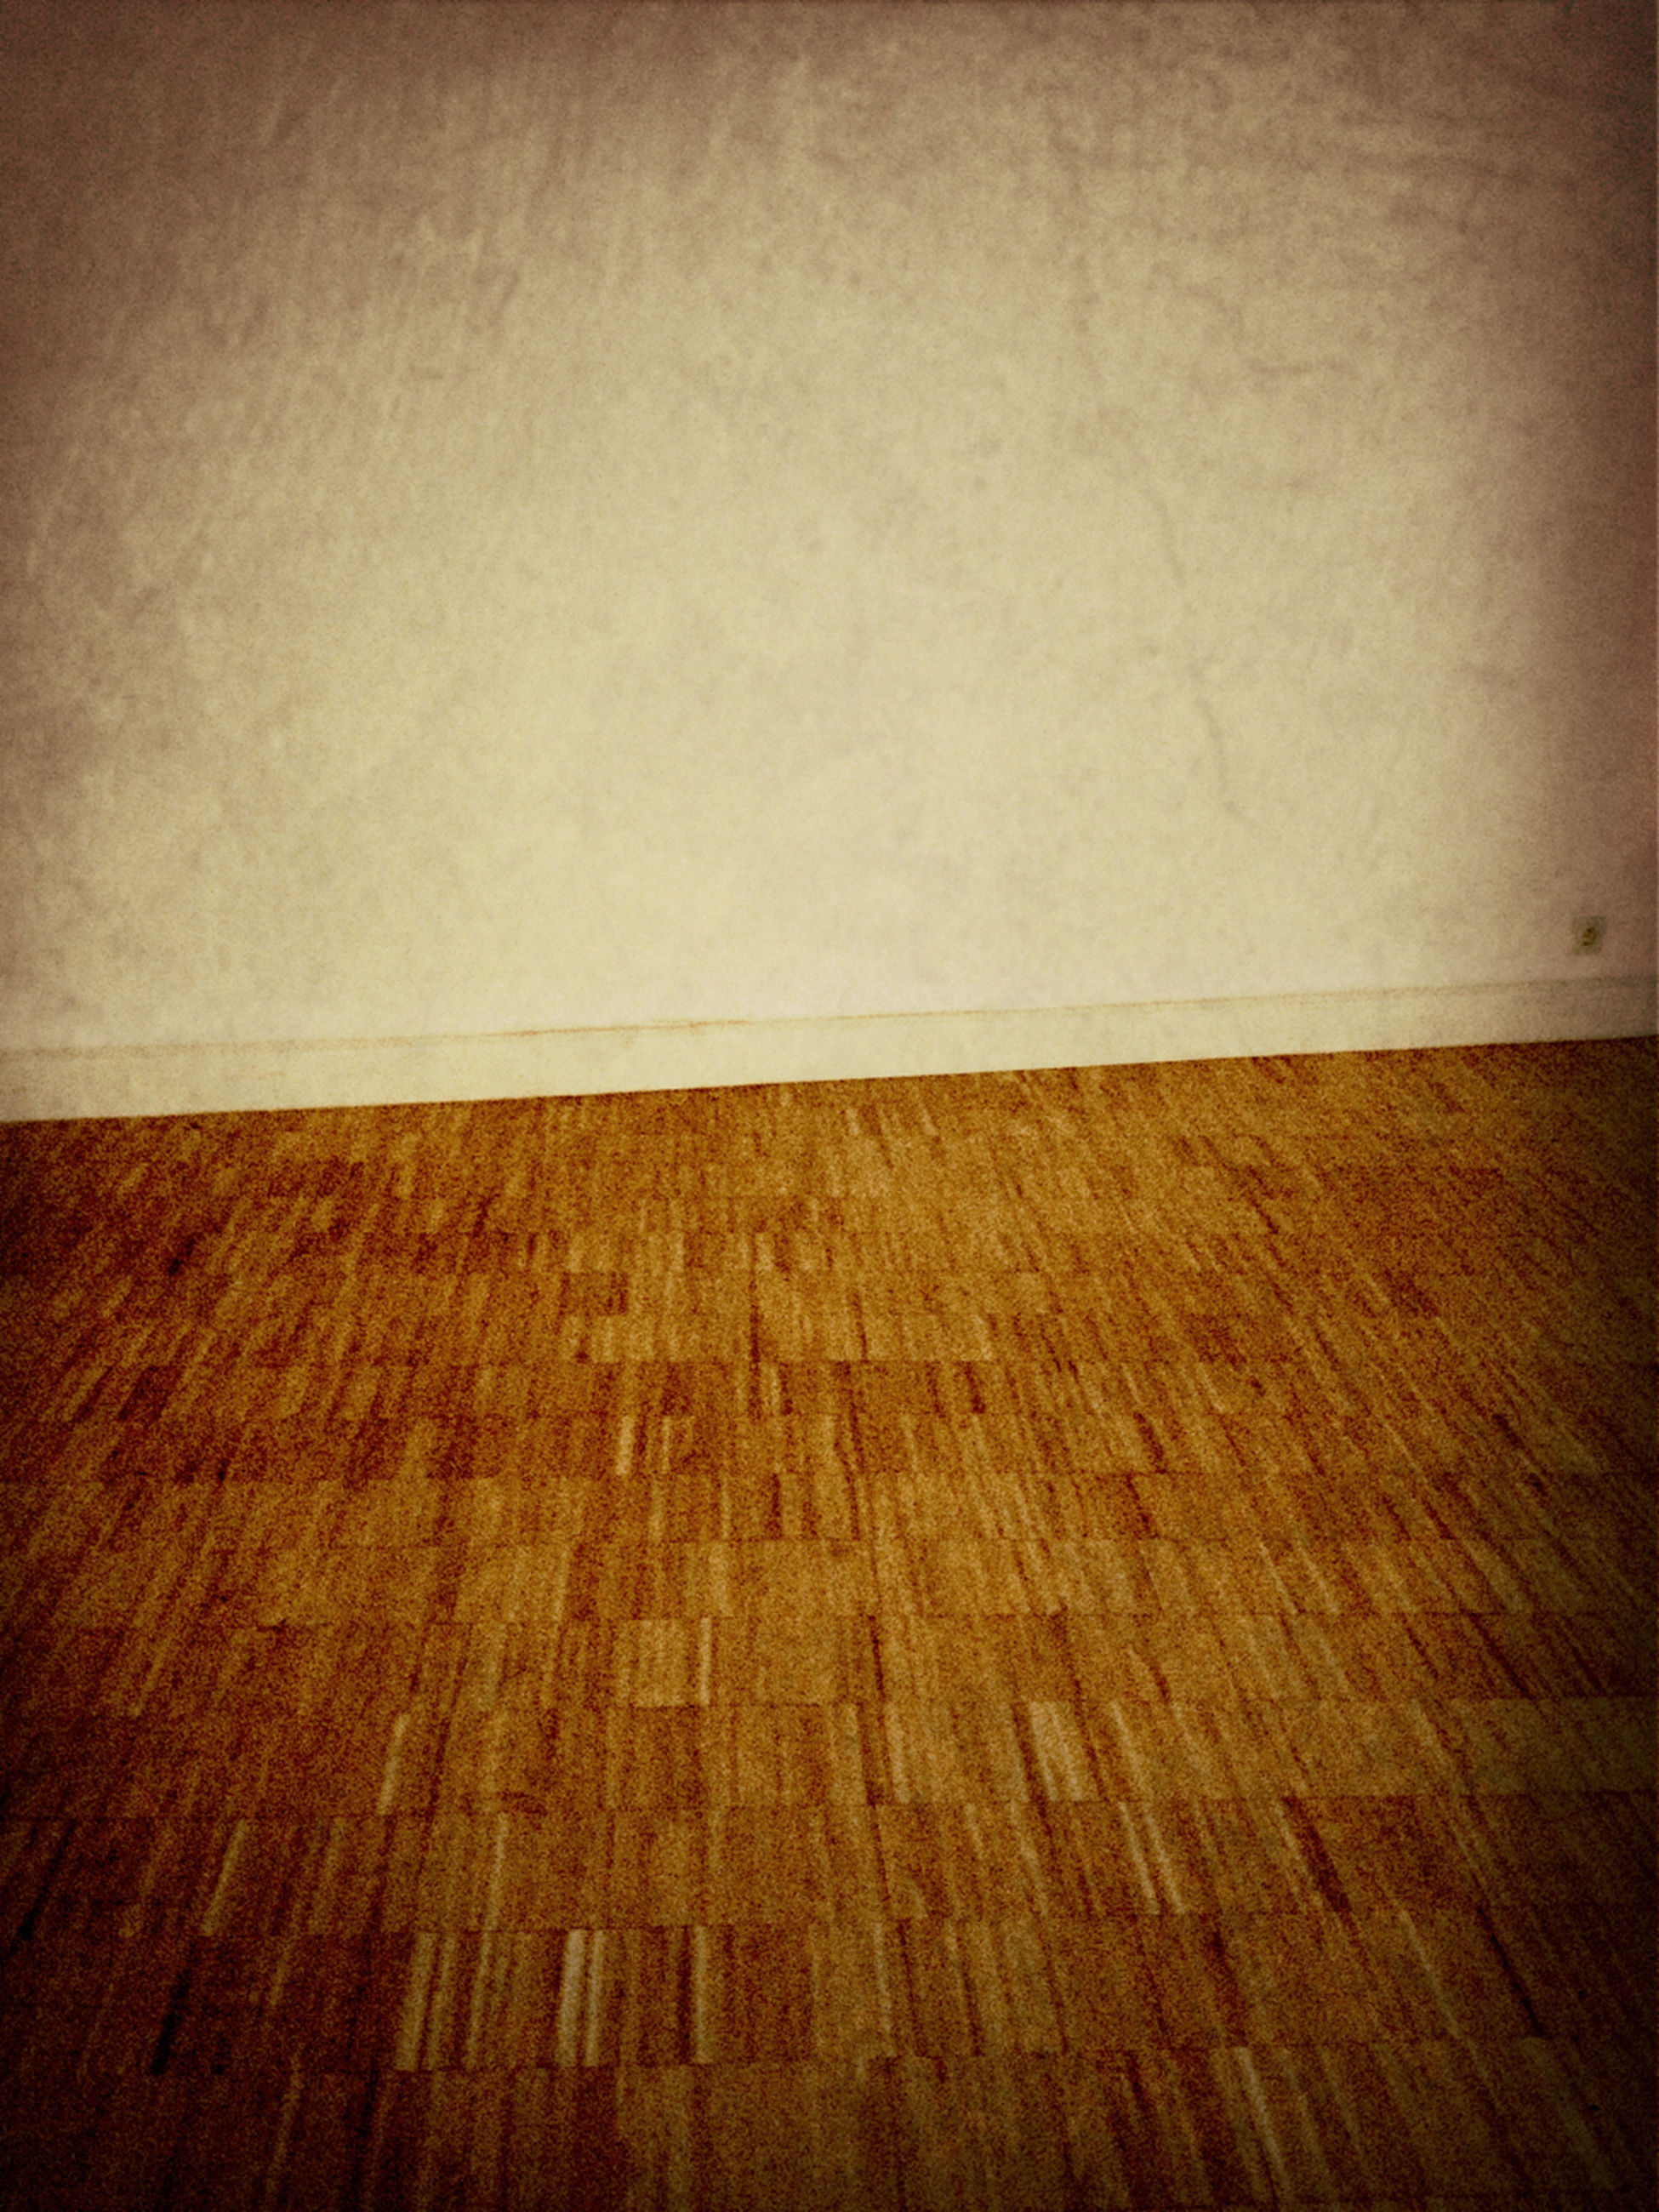 indoors, wall - building feature, wood - material, flooring, full frame, pattern, no people, textured, wooden, wall, brown, communication, built structure, backgrounds, high angle view, hardwood floor, geometric shape, architecture, floor, copy space